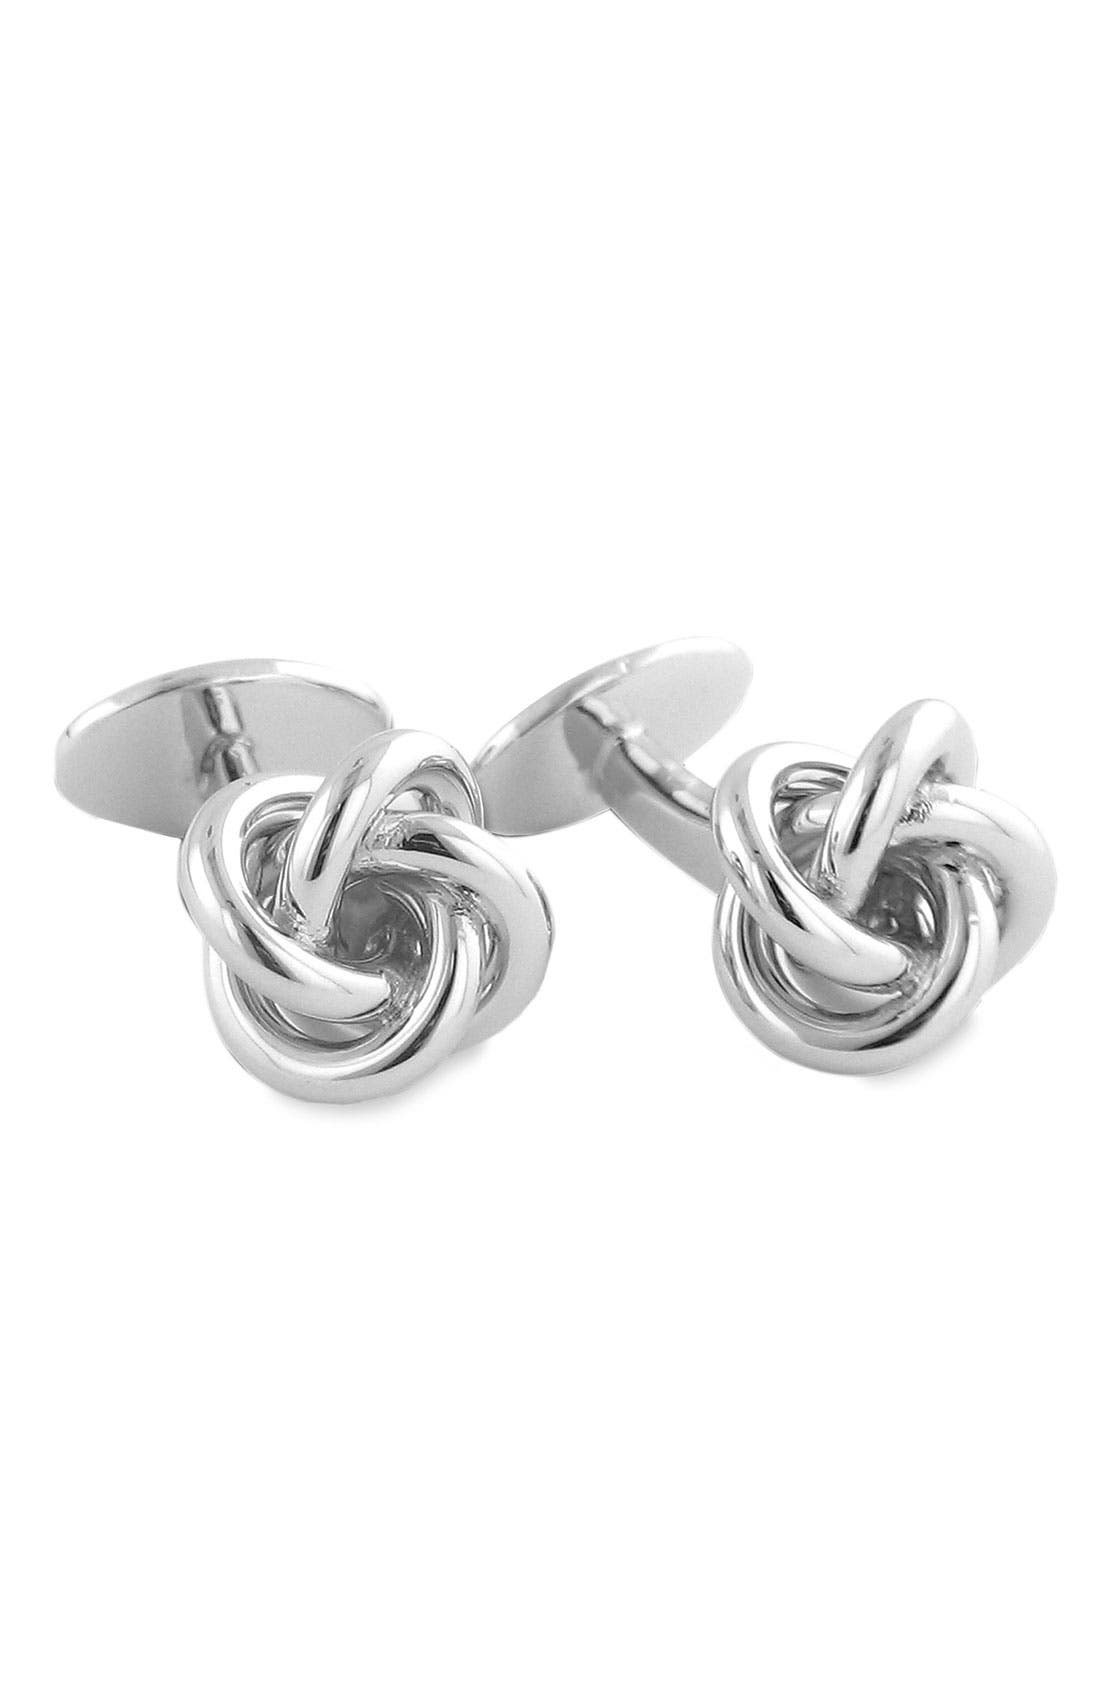 Knot Cuff Links,                         Main,                         color, STERLING SILVER